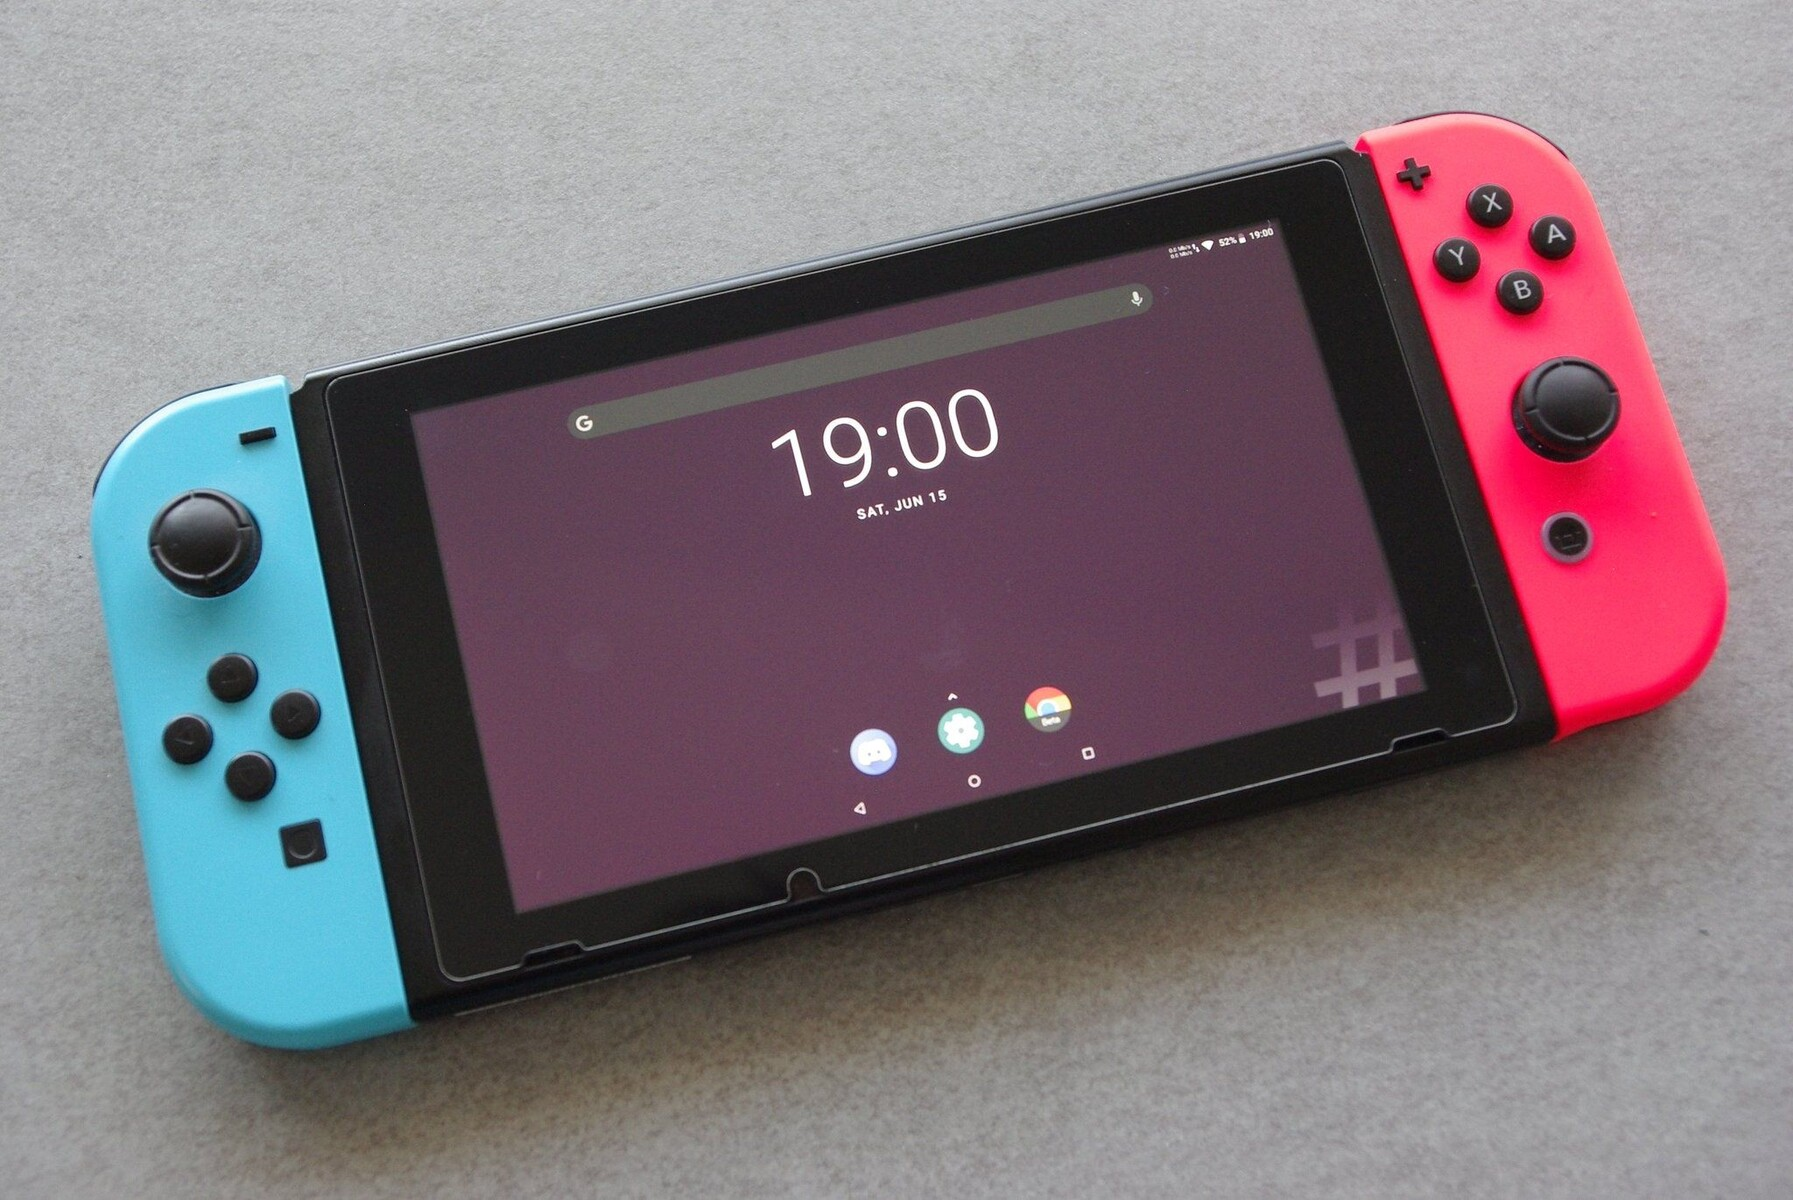 The Switch surpasses 36.87 million units sold globally